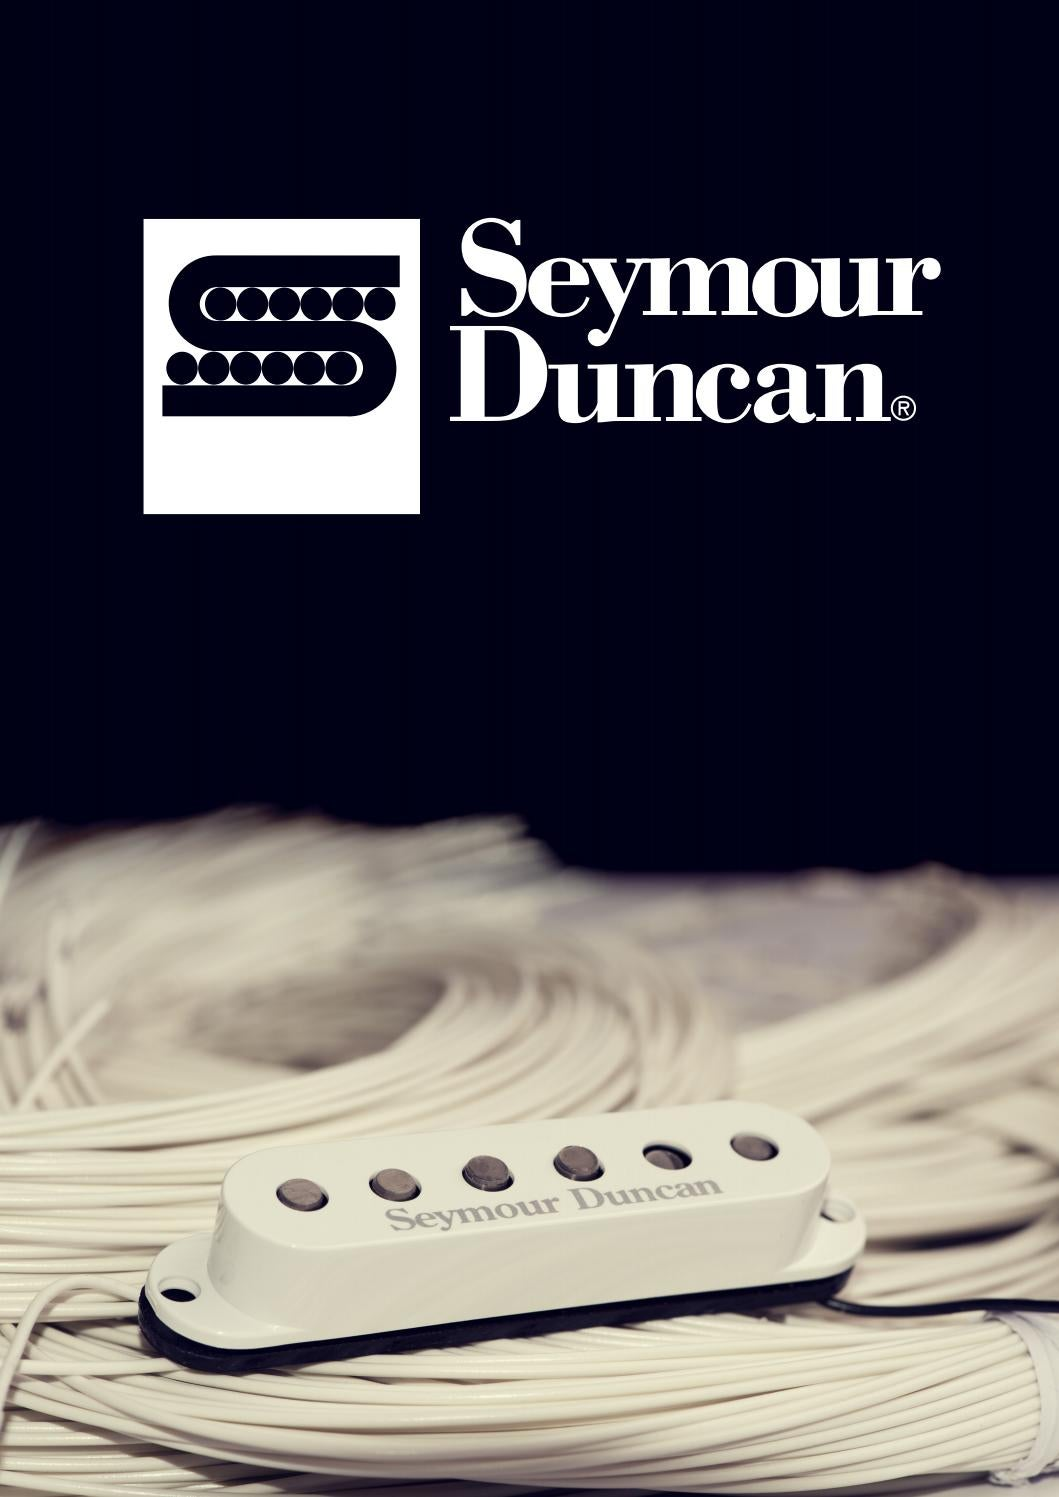 Seymour Duncan 2016 Uk Brochure By Rosetti Ltd Issuu Shr 1 Series Wiring Diagram Hot Rails